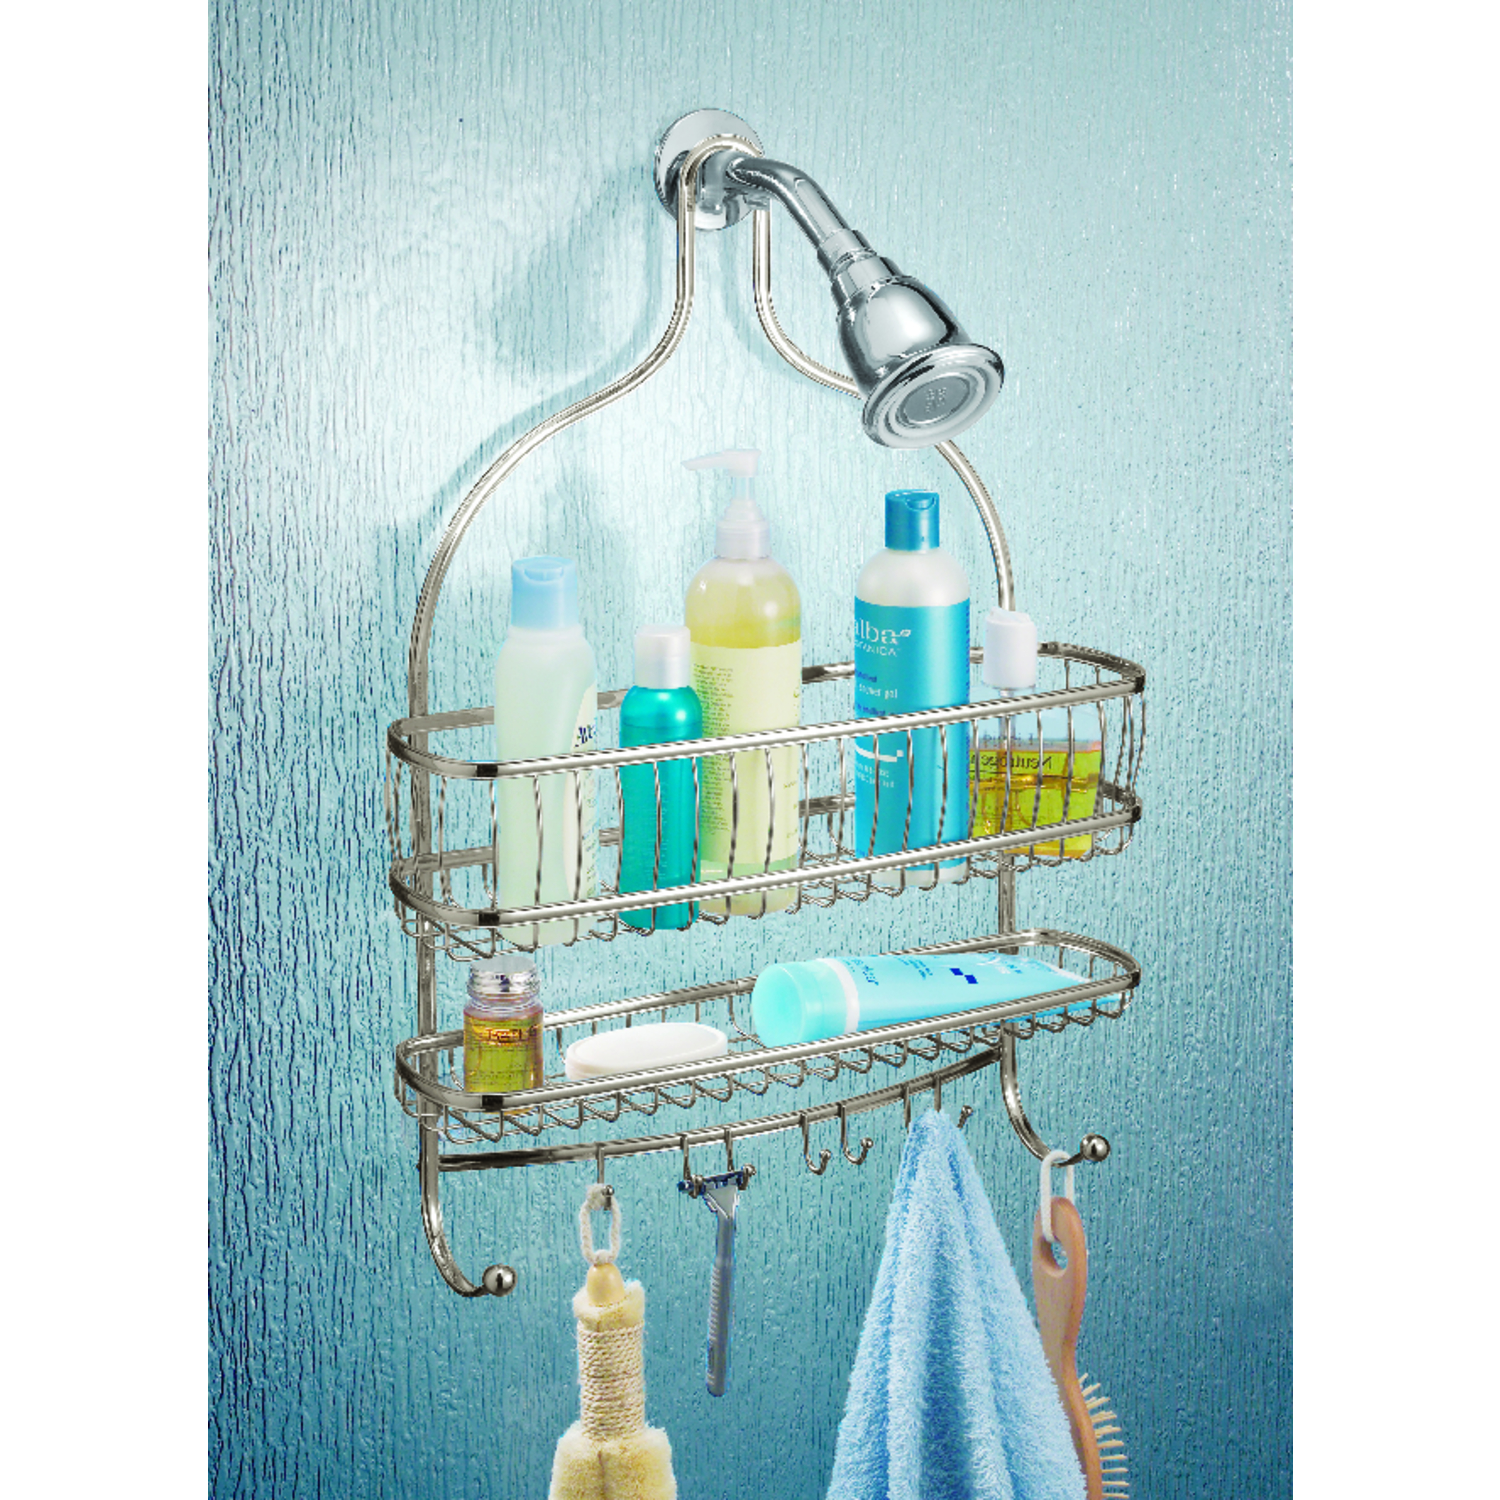 InterDesign Shower Caddy 4 in. H x 15 in. W x 21 in. L Satin Nickel ...